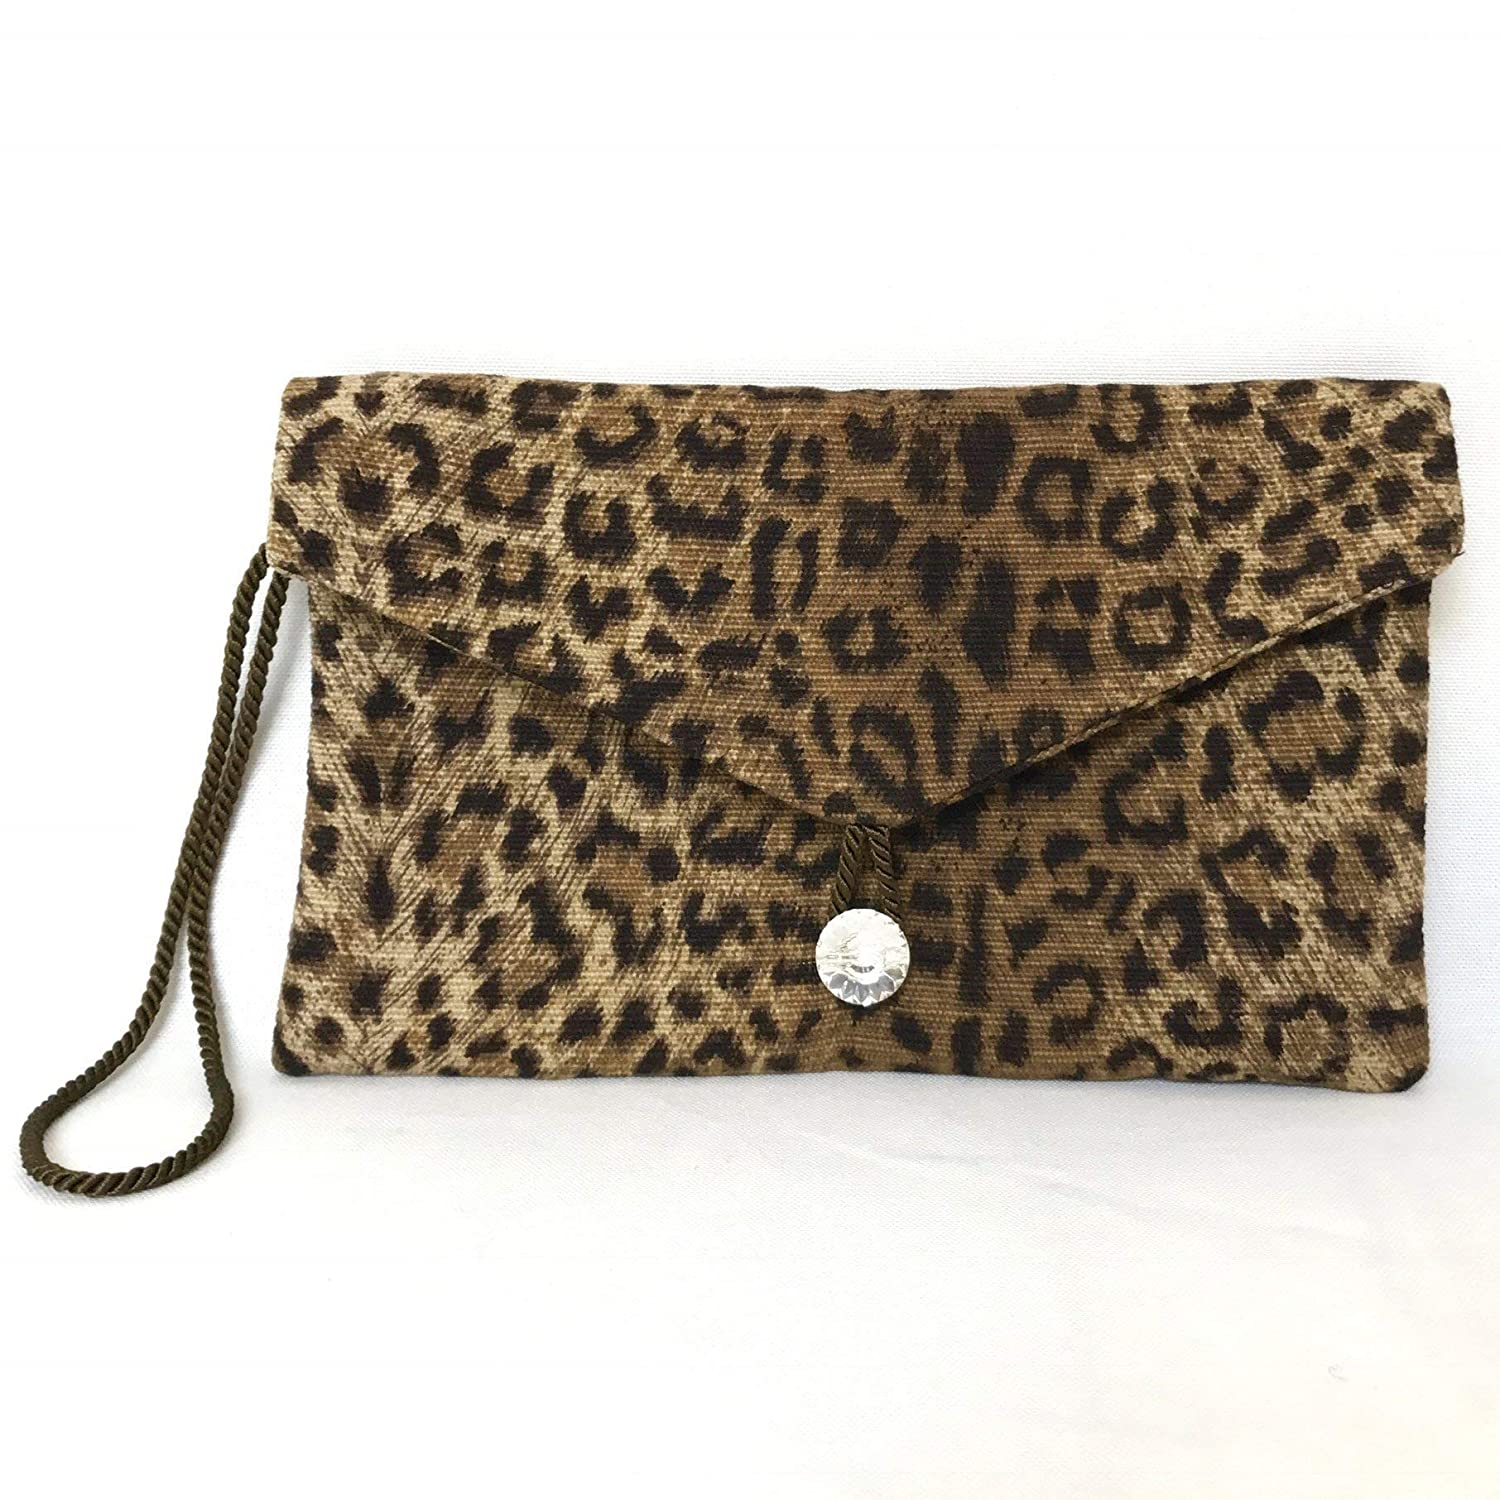 225e1feca7400b Vegan Leopard Wristlet - NO RULES COLLECTION. Vegan Leopard Wristlet - NO  RULES COLLECTION · Pouch Front